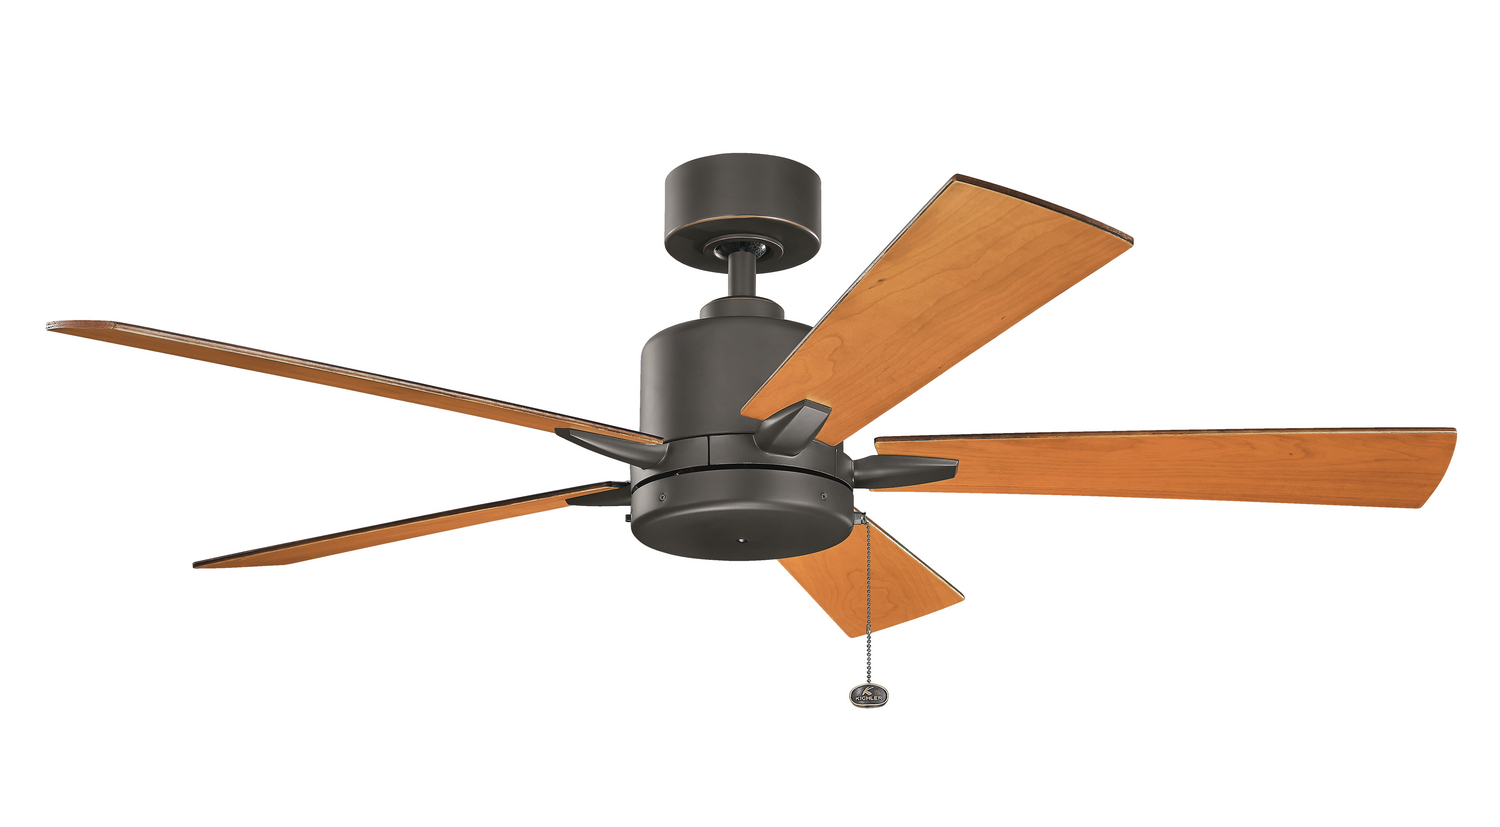 52 inchCeiling Fan from the Bowen collection by Kichler 330242OZ